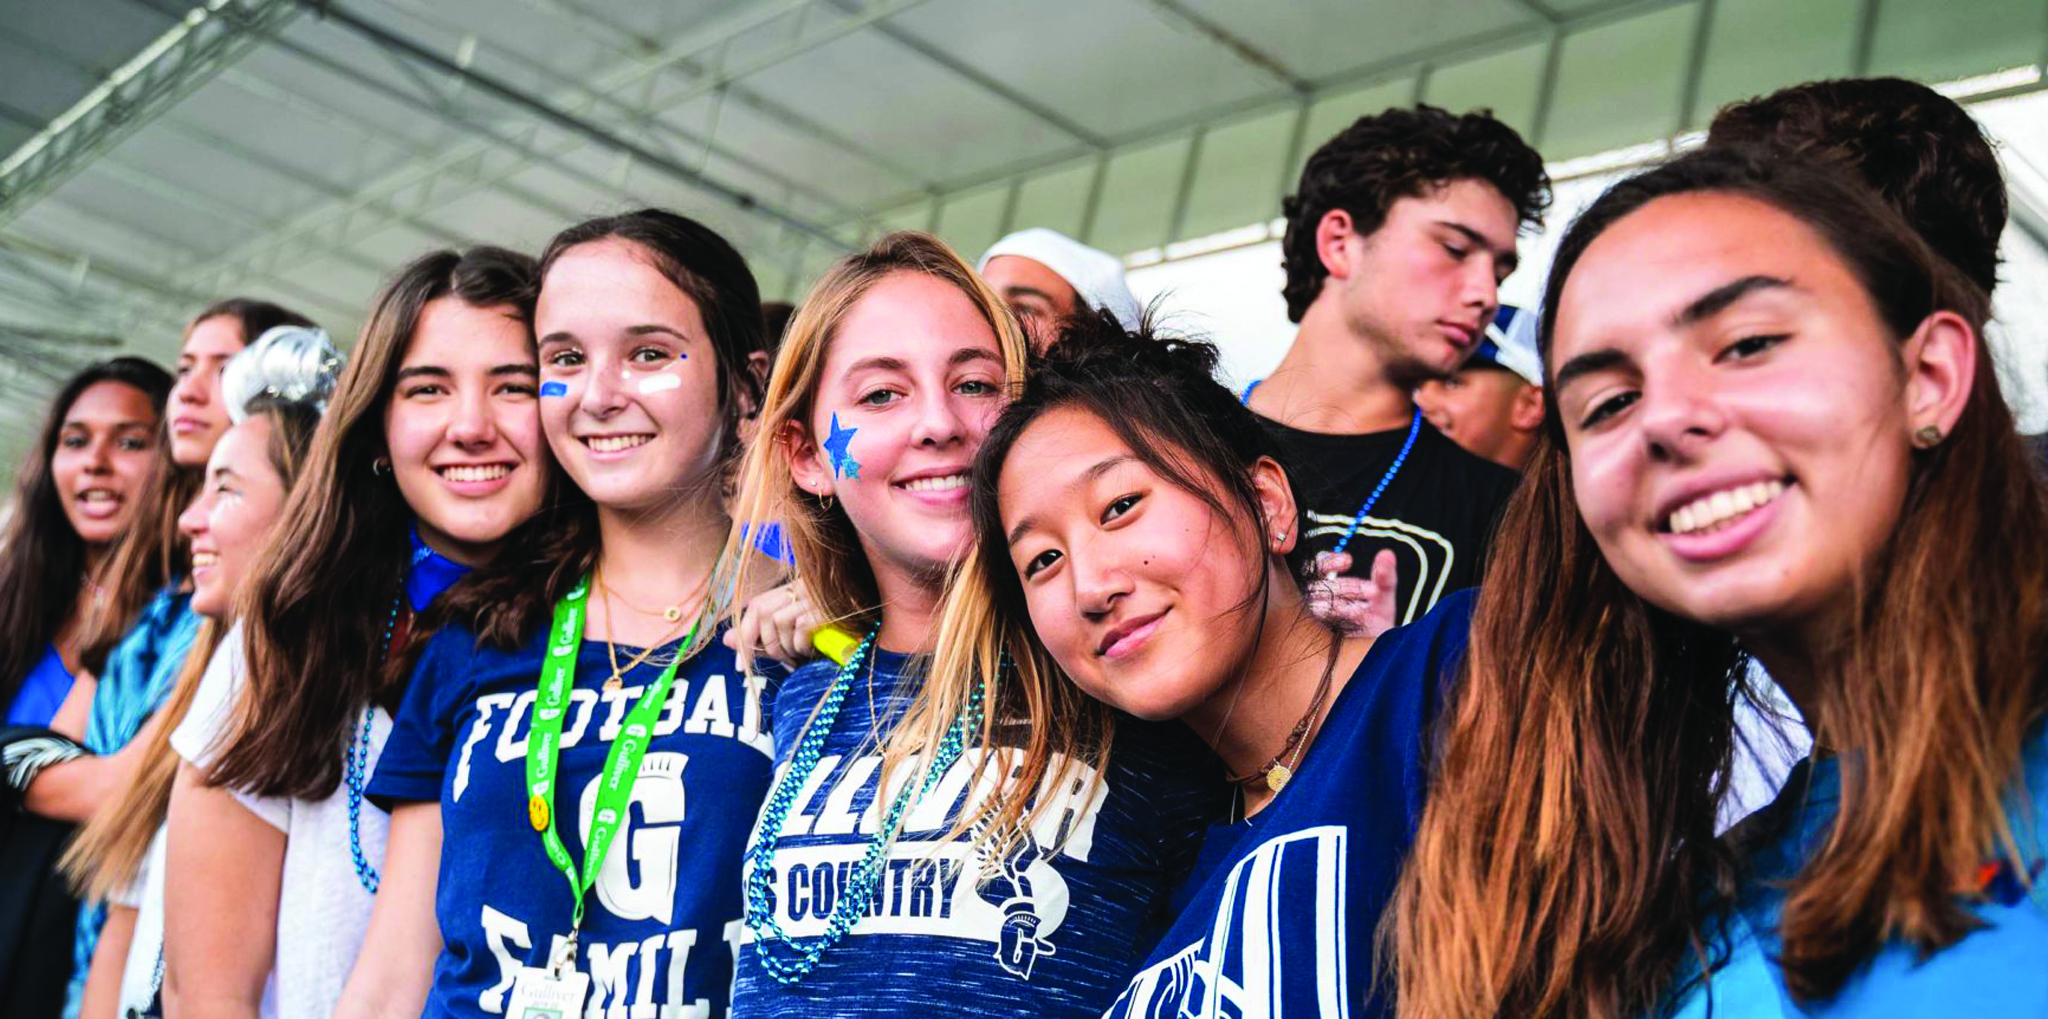 Group of students at football game